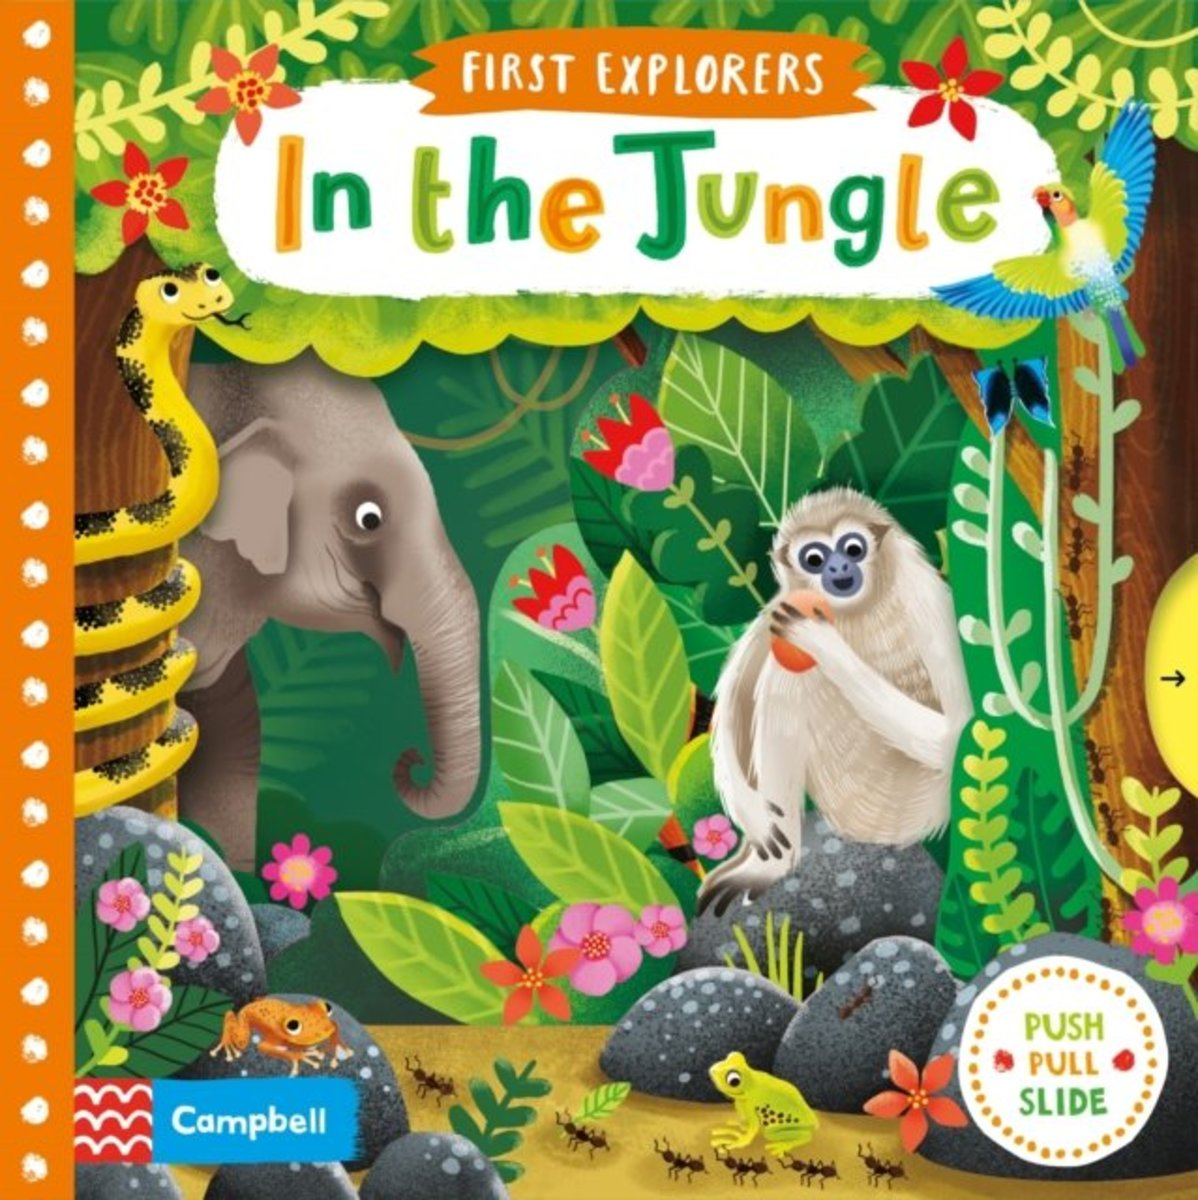 First Explorers: In the Jungle